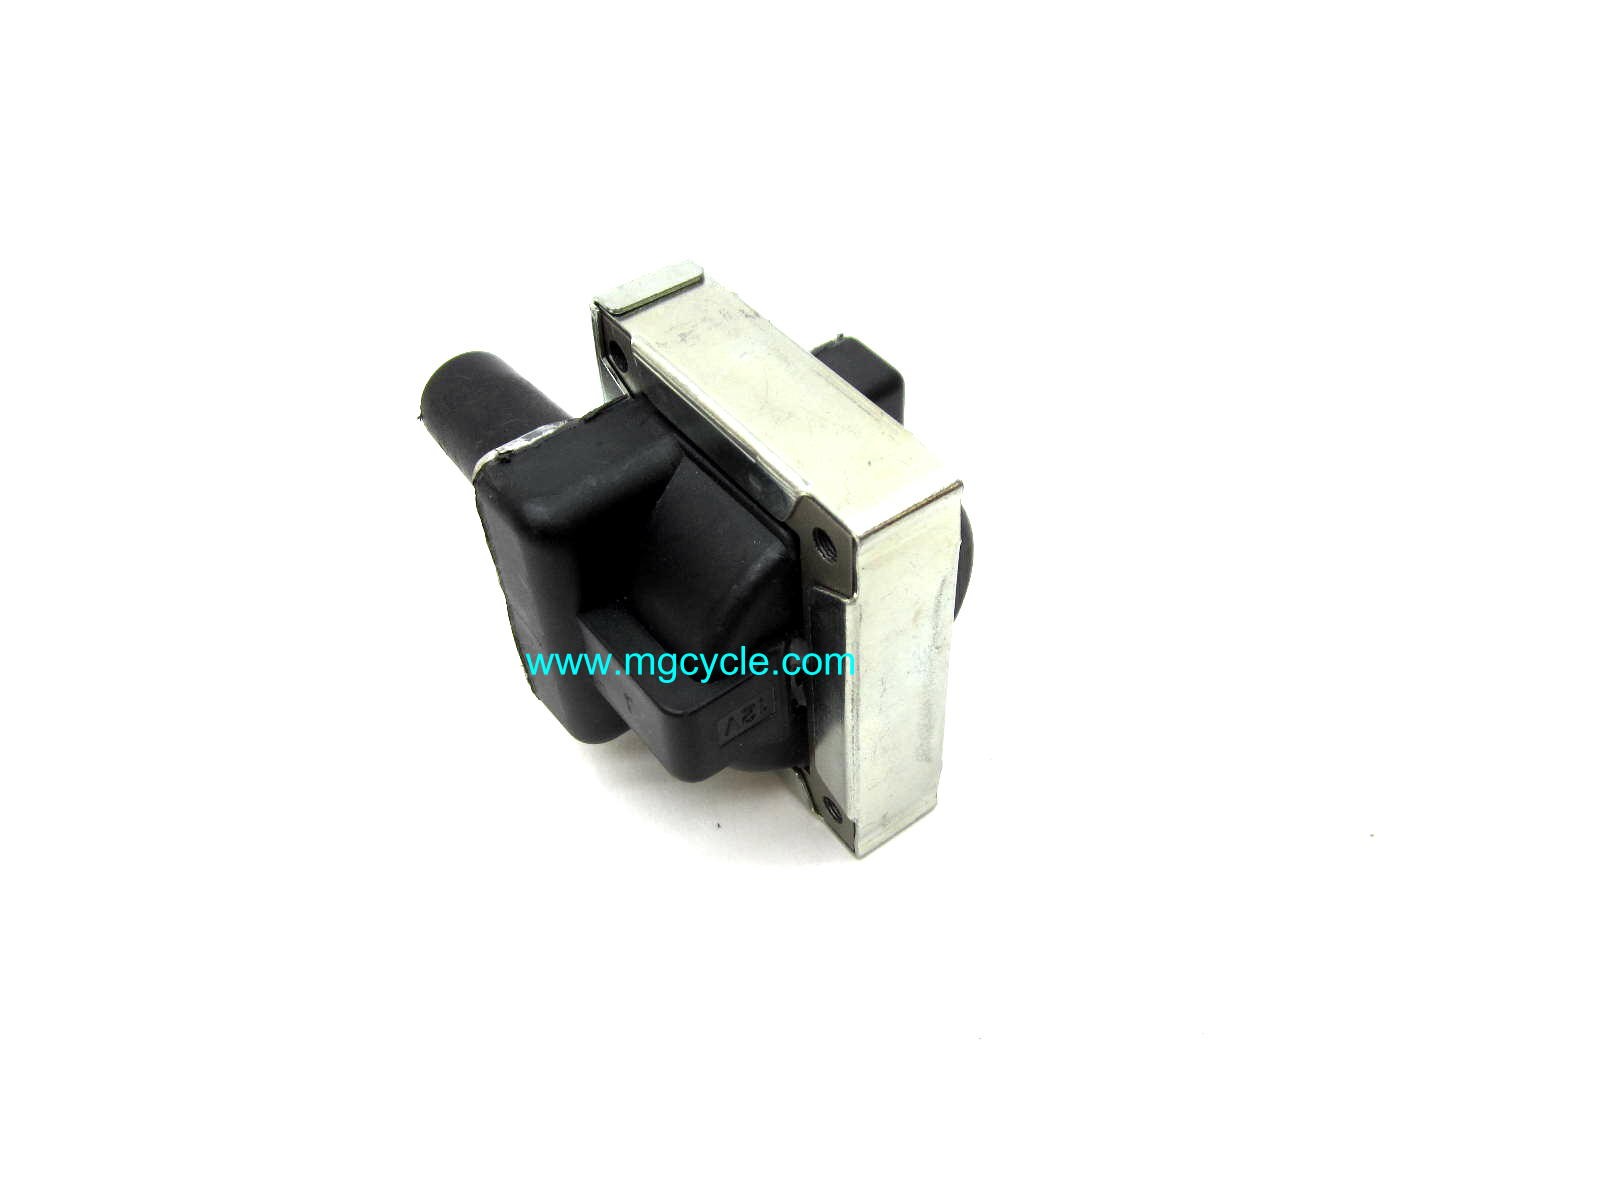 Ignition coil GU30716500 V11 Sport V11 LM EV Jackal Bassa Quota